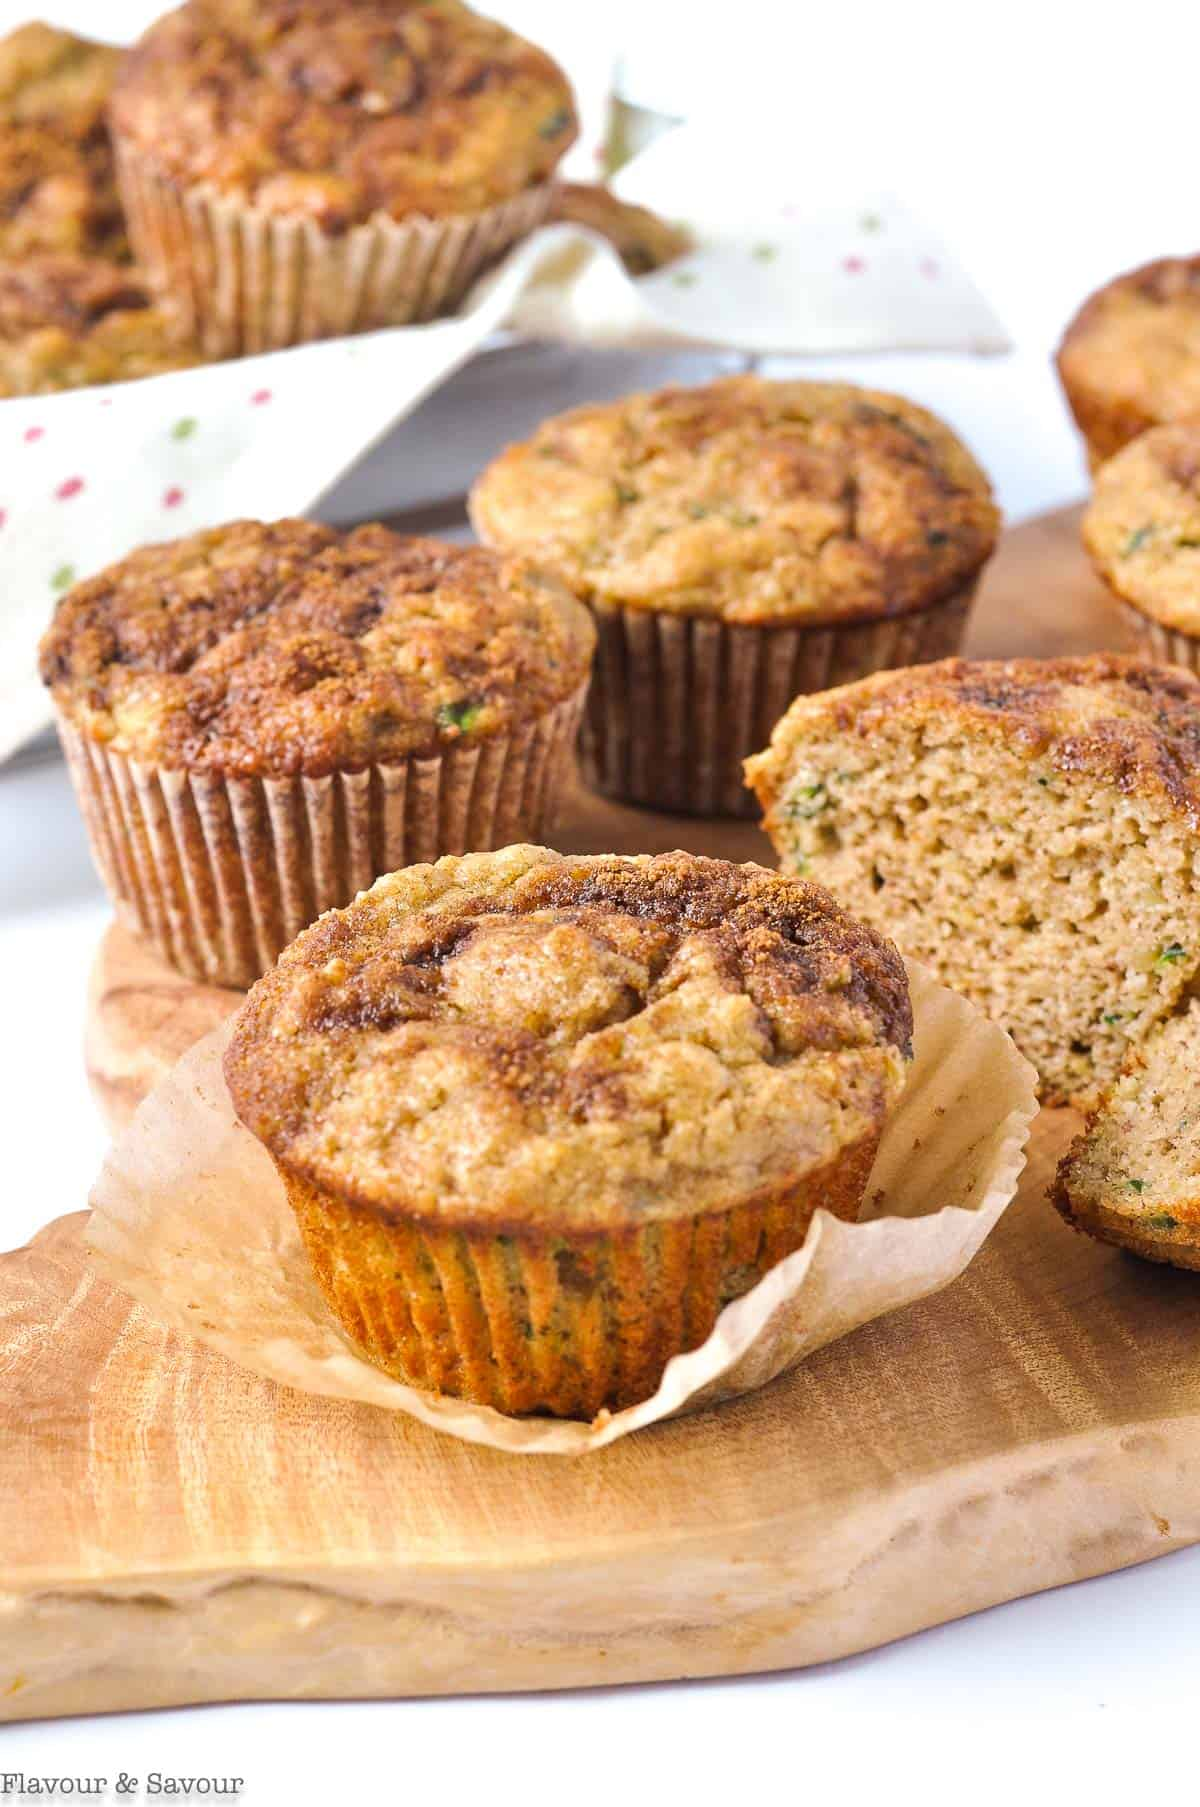 Zucchini Banana Muffins on a board with a basket of muffins in the background